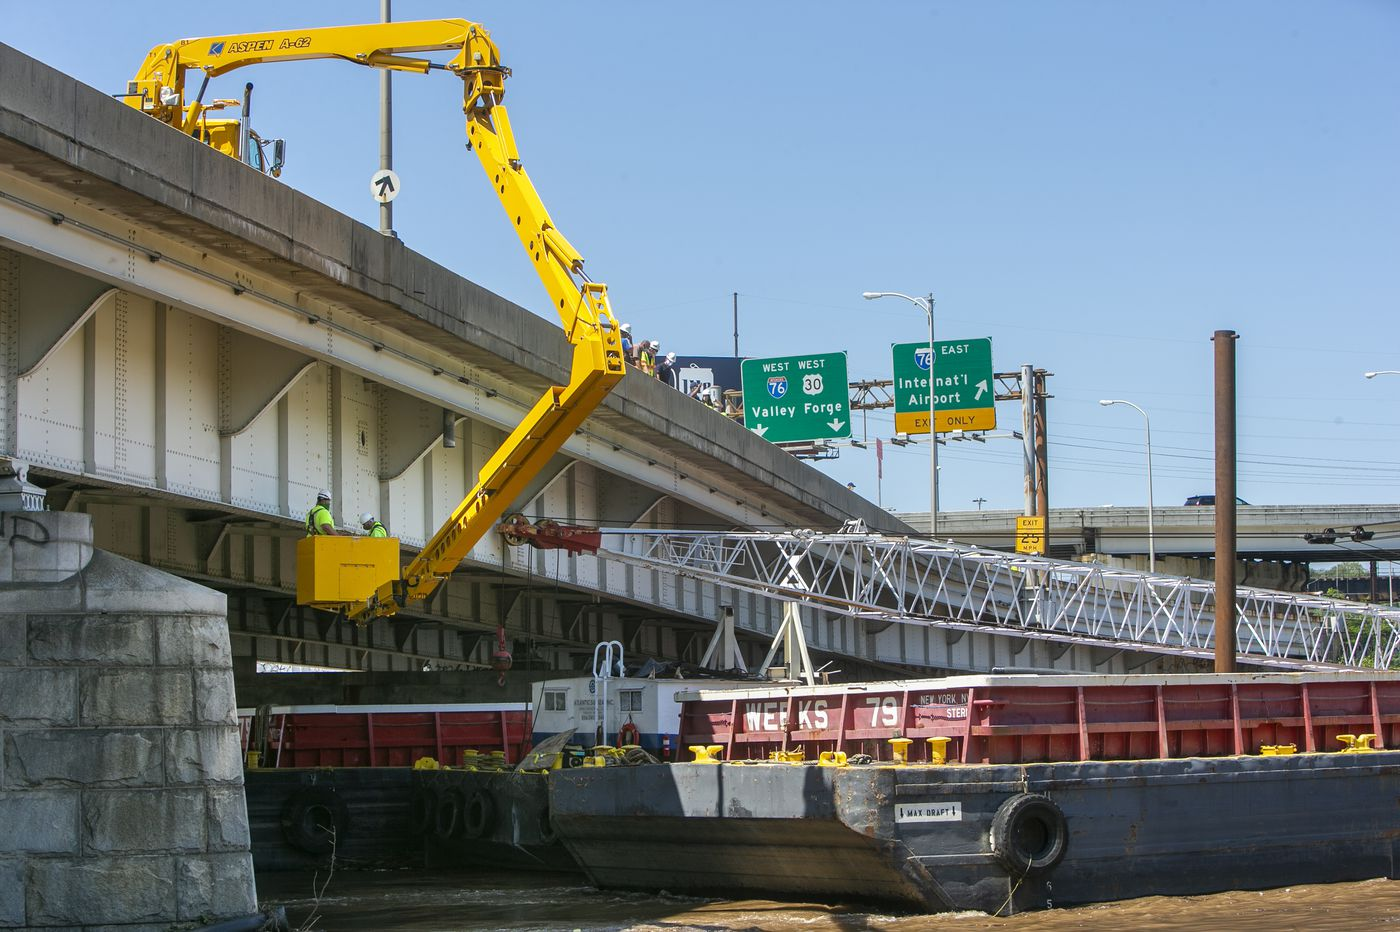 The Vine Street bridge took a hit from a 100-ton barge, but is deemed OK